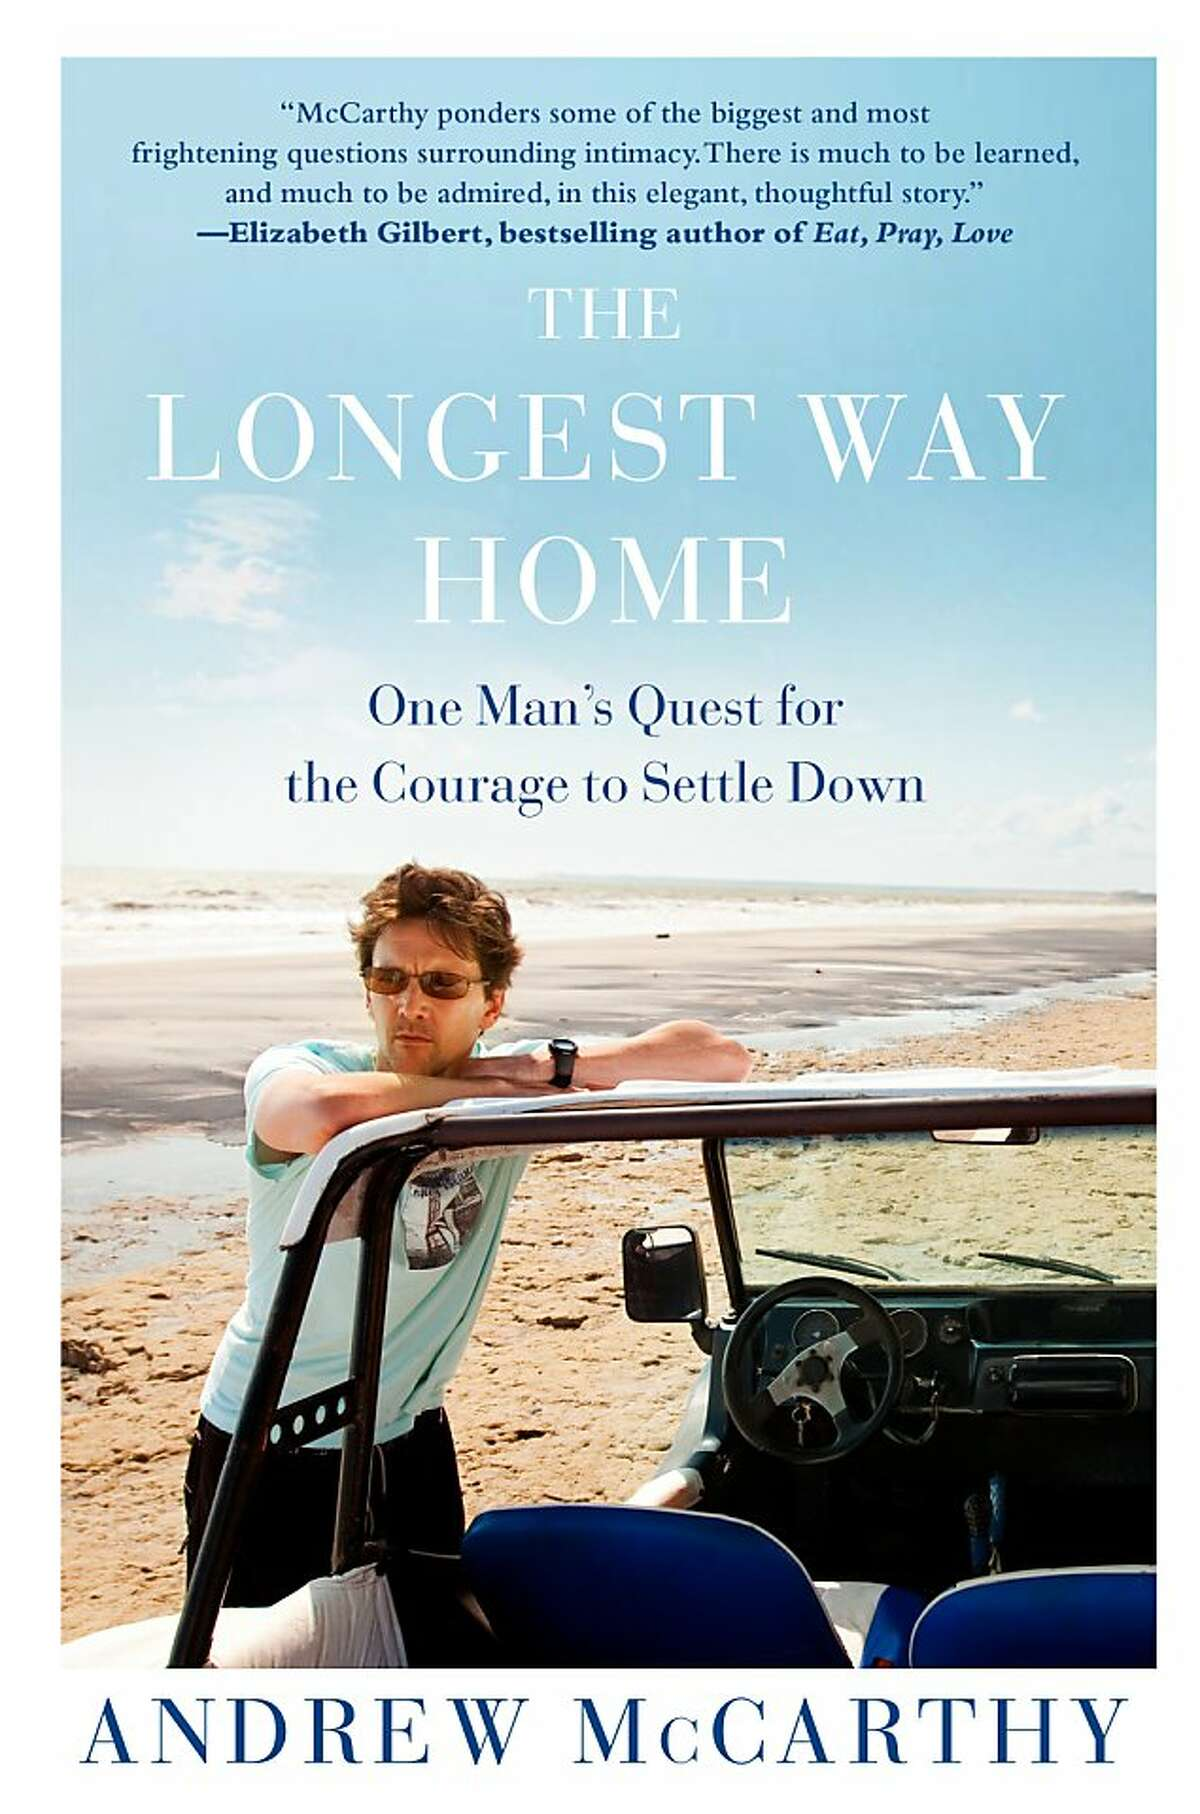 The Longest Way Home, by Andrew McCarthy